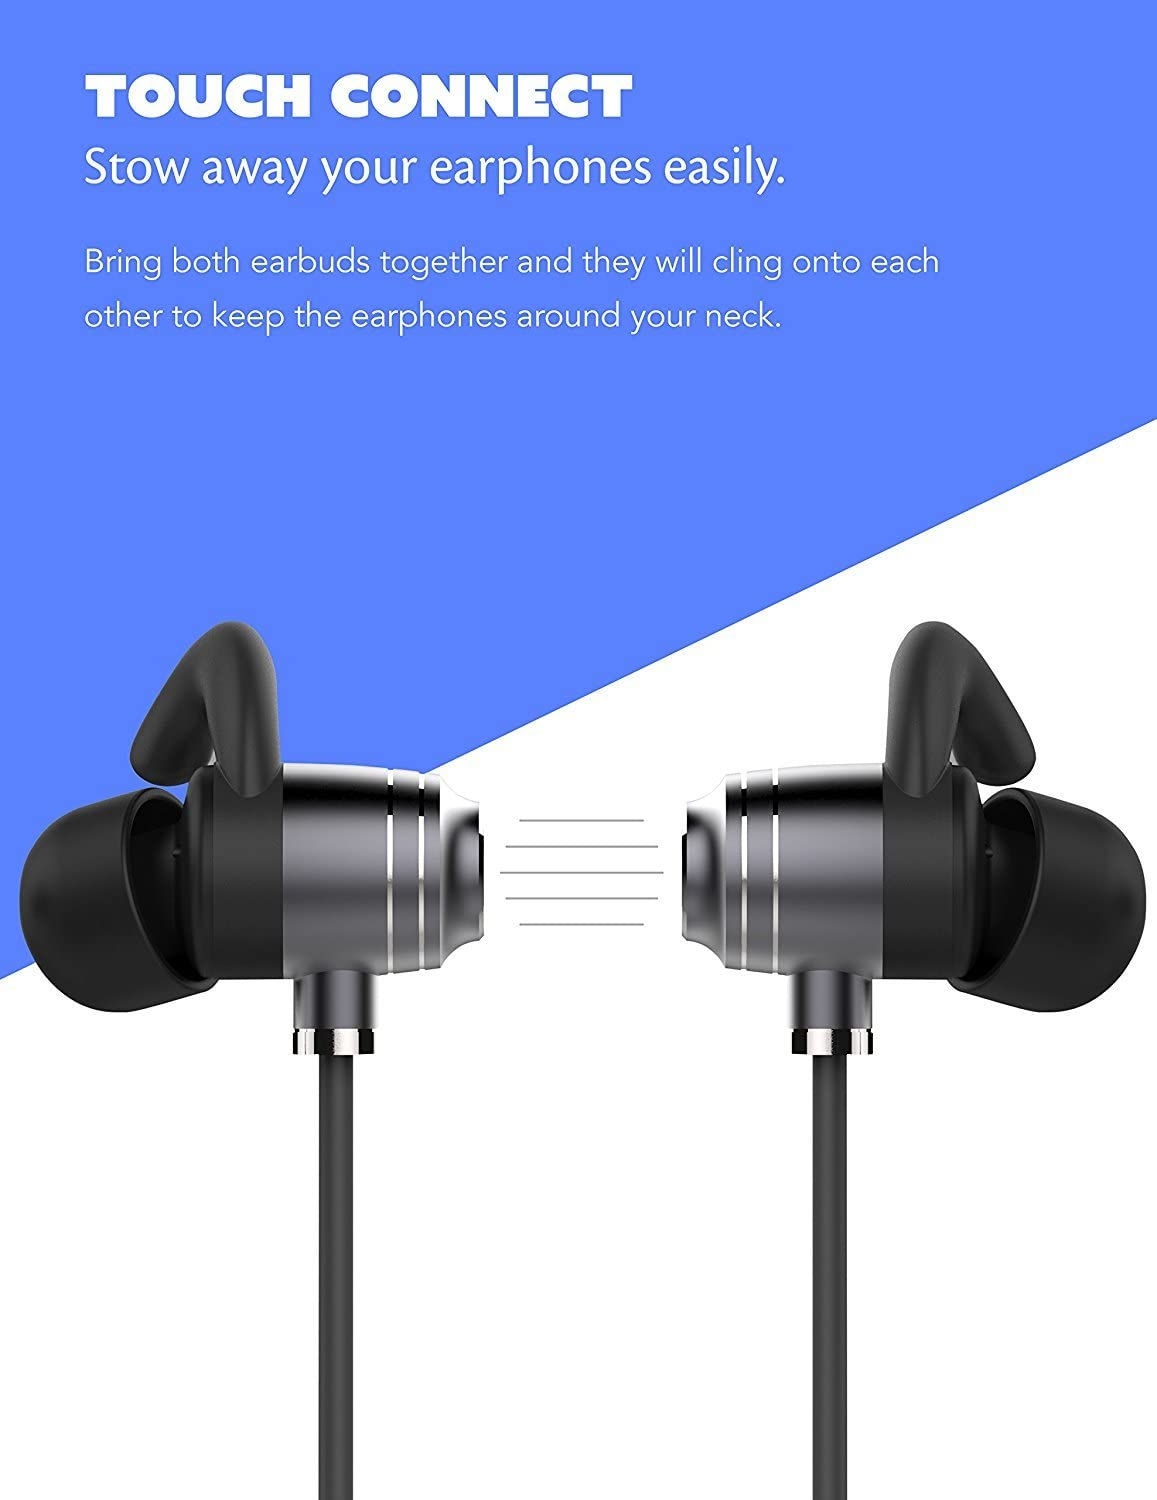 Works with CVC 6.0 Noise Cancellation Samsung,Google Pixel,LG Boxgear LG Optimus L3 II Dual E435 Bluetooth Headset in-Ear Running Earbuds IPX4 Waterproof with Mic Stereo Earphones Apple